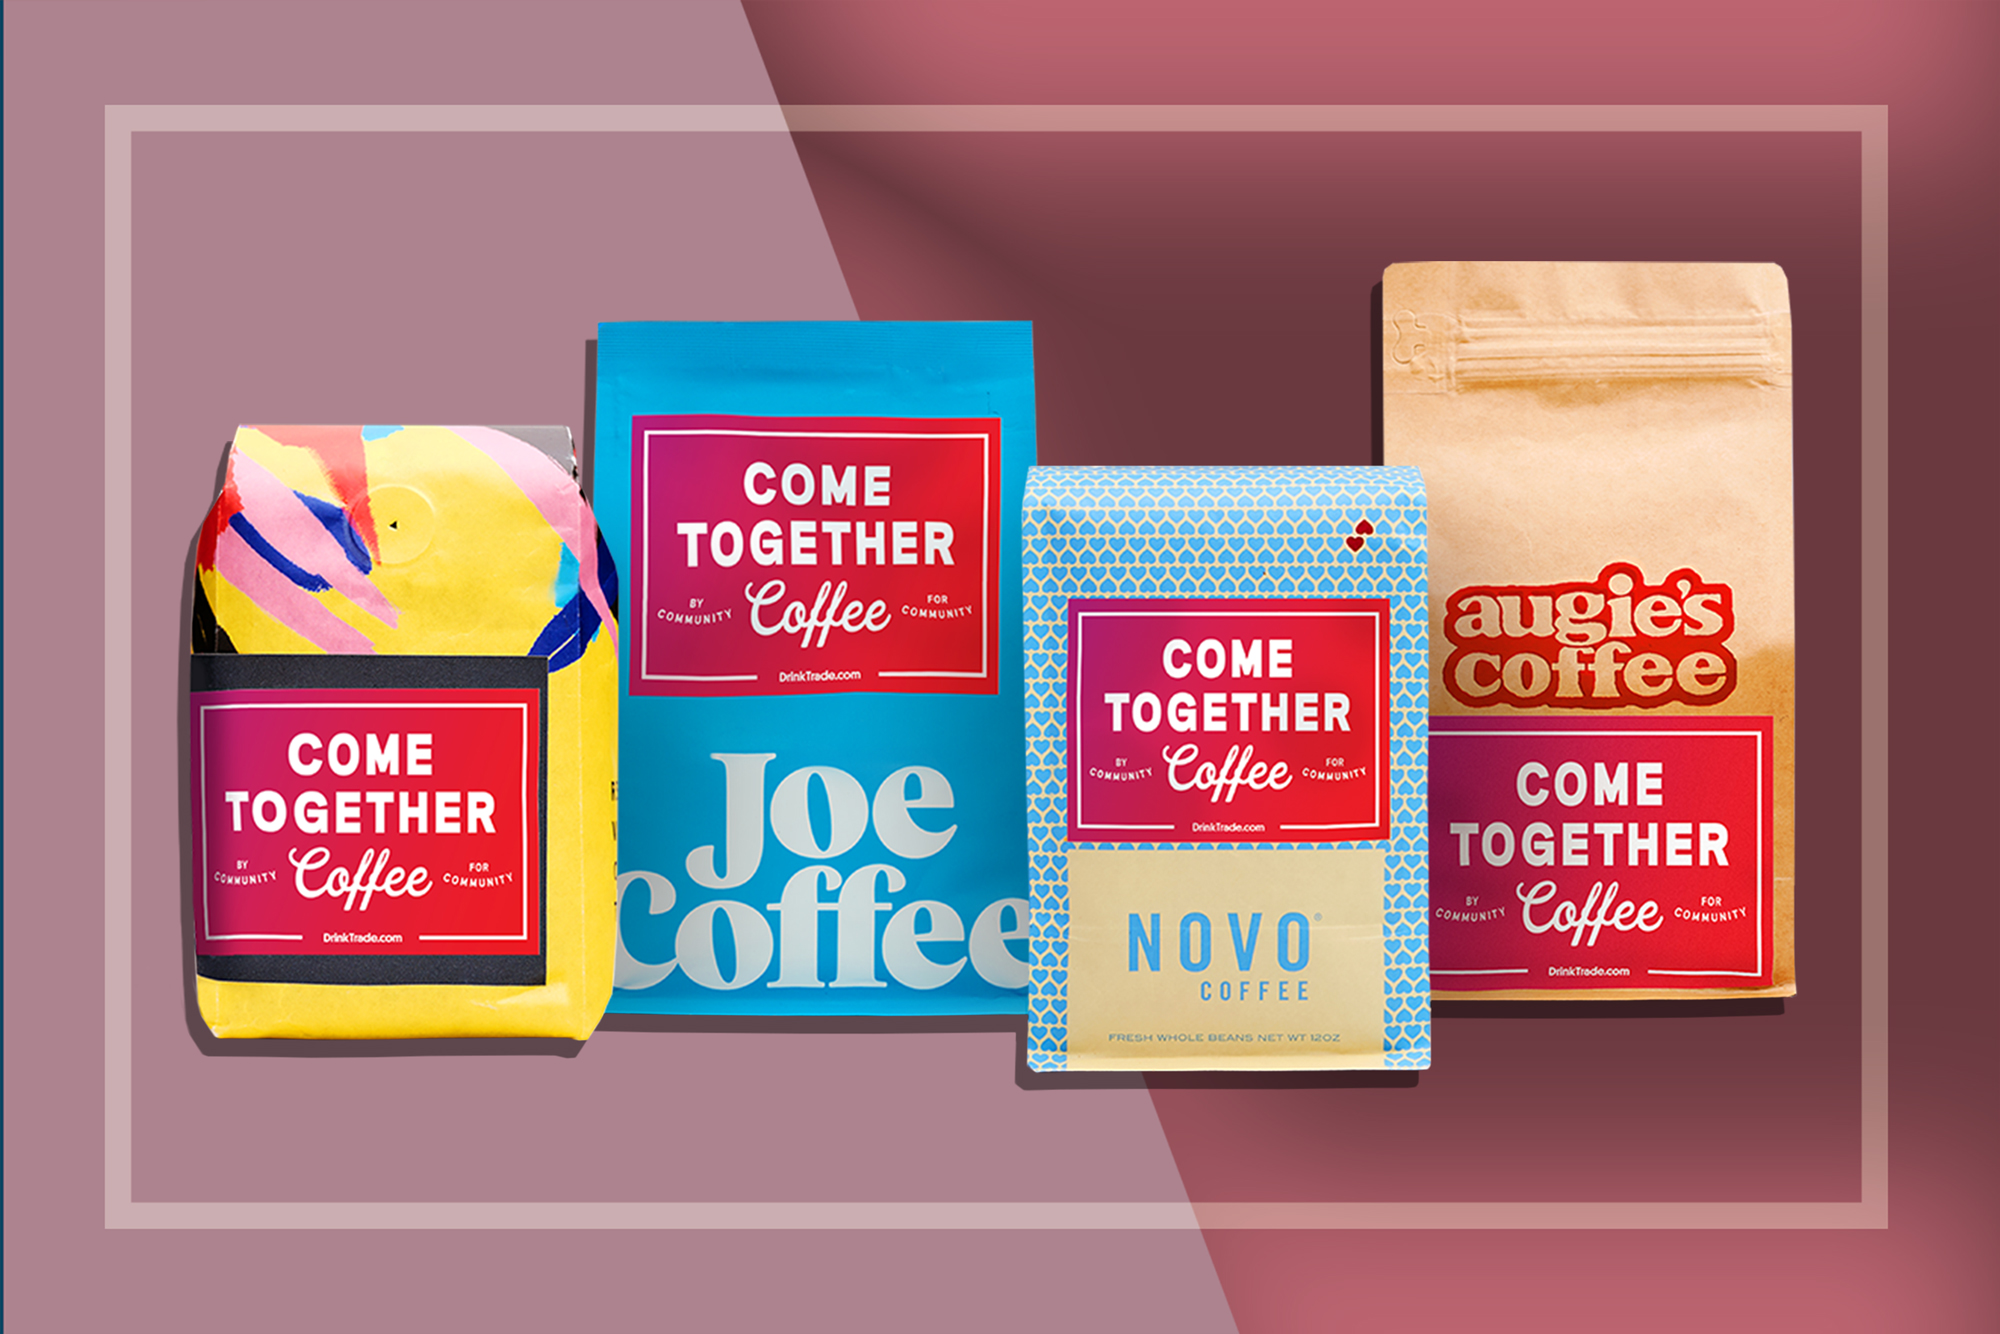 Trade Launches Come Together Coffee for Covid-19 Response